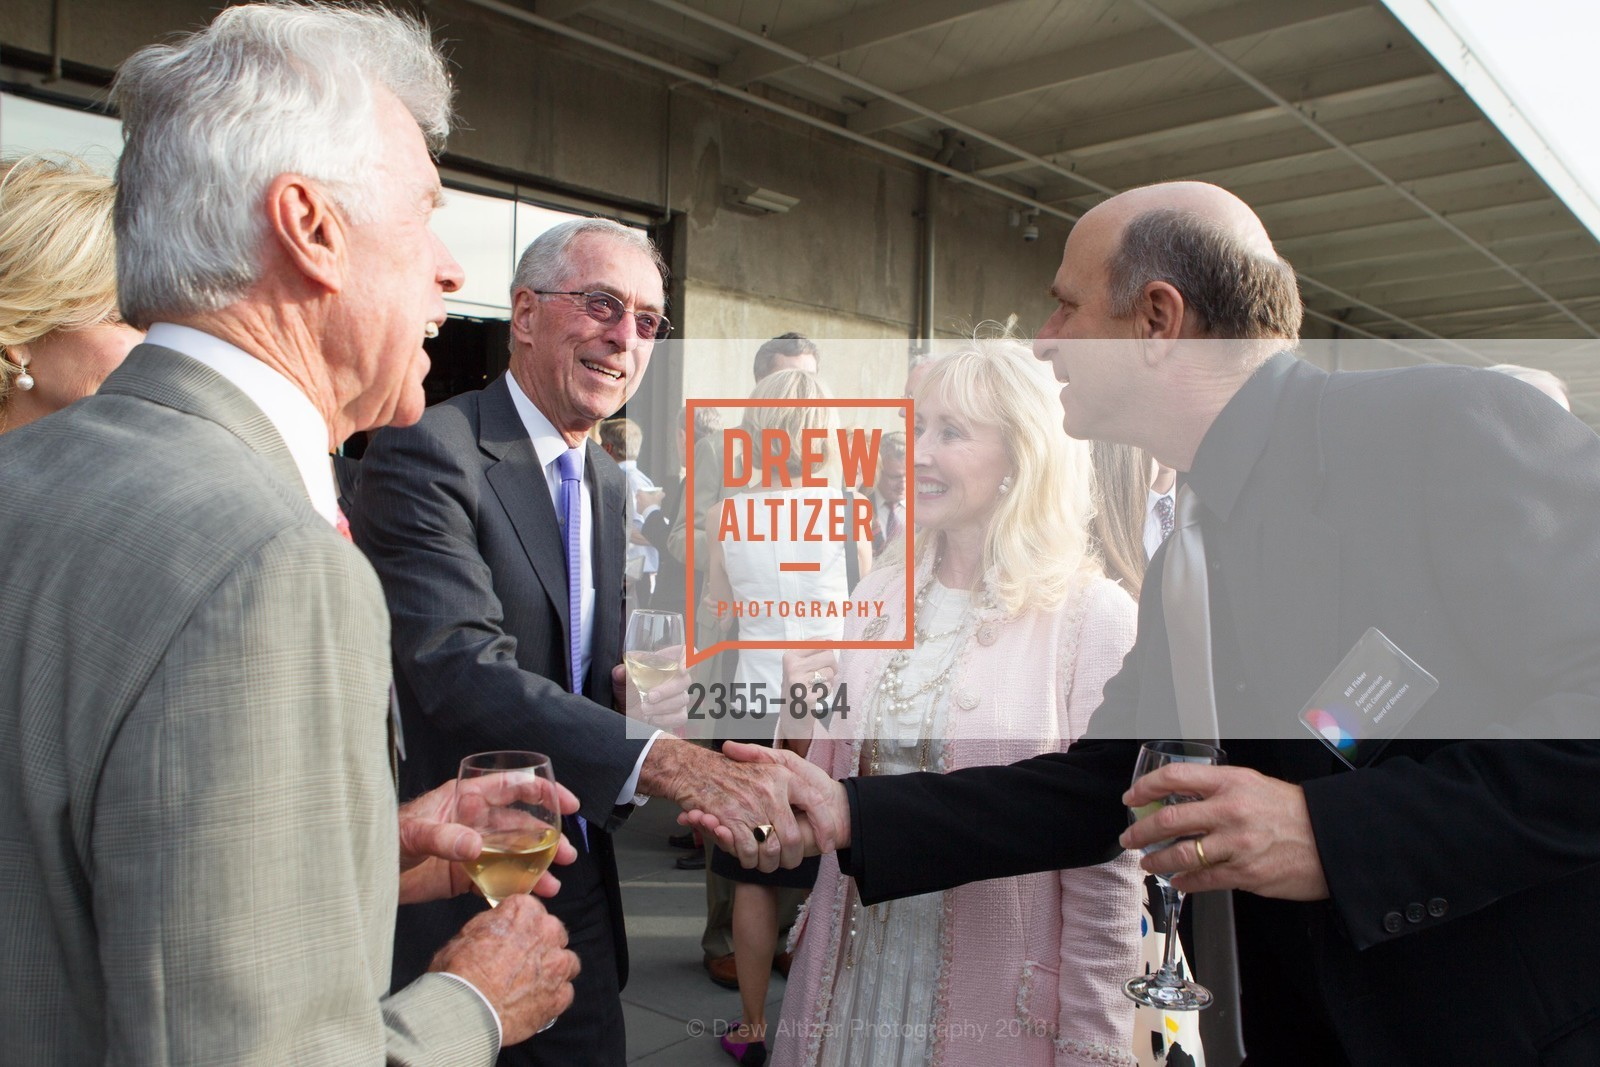 Van Kasper, JIm Buckley, Merrill Kasper, Exploratorium Spring Gala, Exploratorium, 140515, May 15th, 2014,Drew Altizer, Drew Altizer Photography, full-service event agency, private events, San Francisco photographer, photographer California